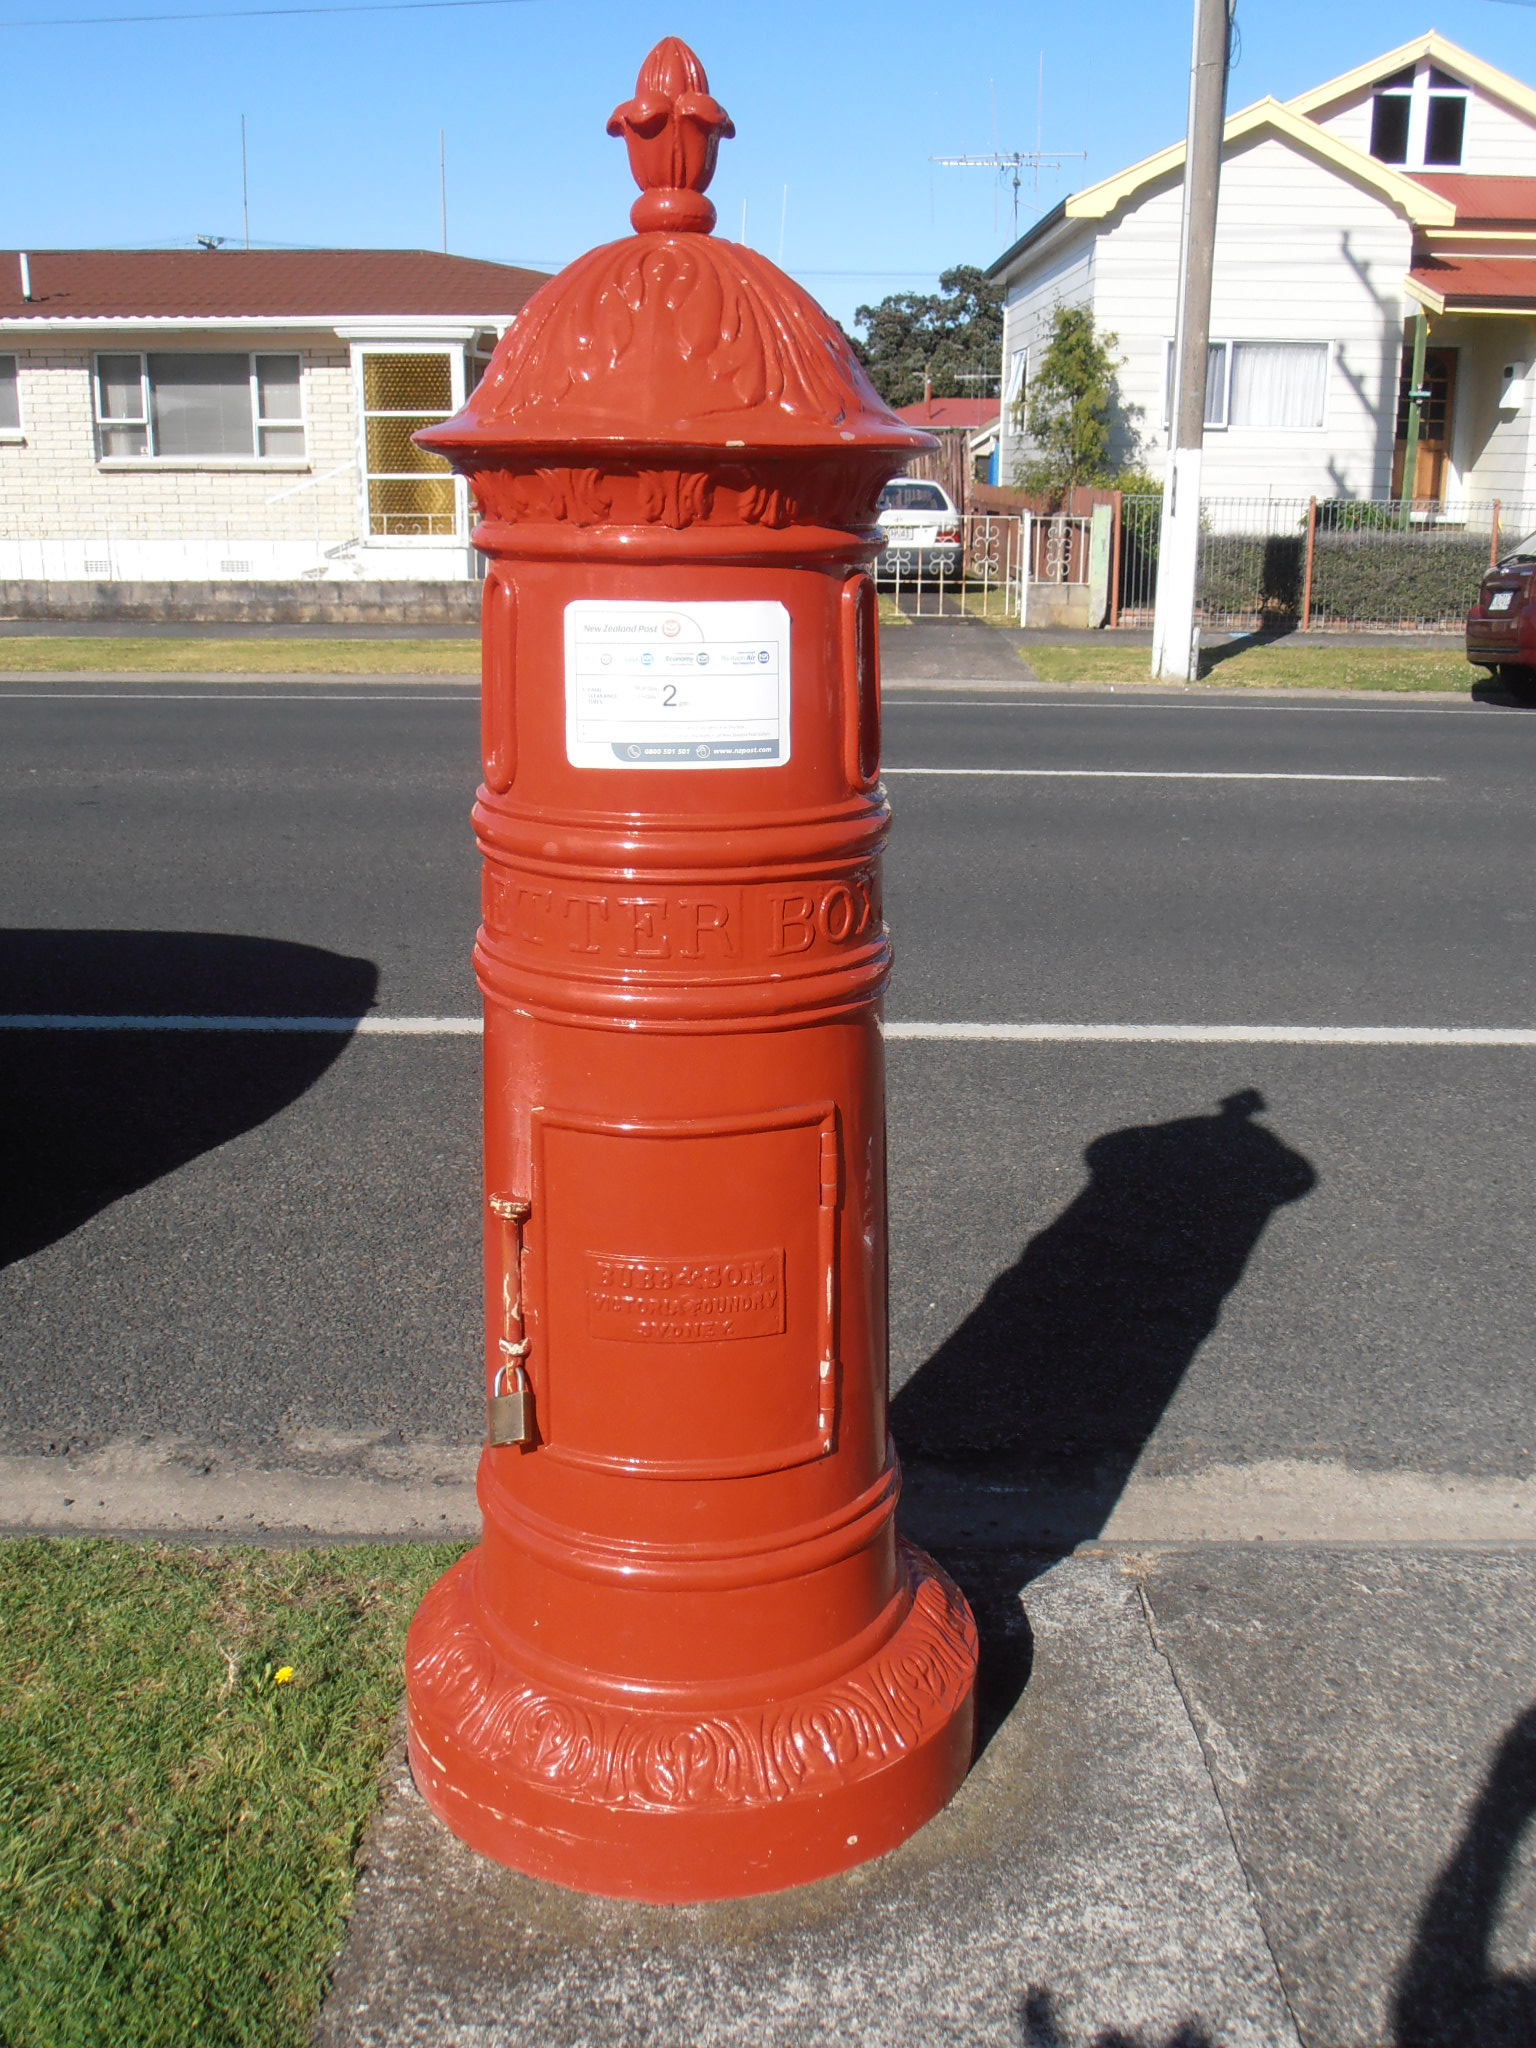 Historic cast iron post box at Thames, New Zealand. Photo taken on December 10, 2012.